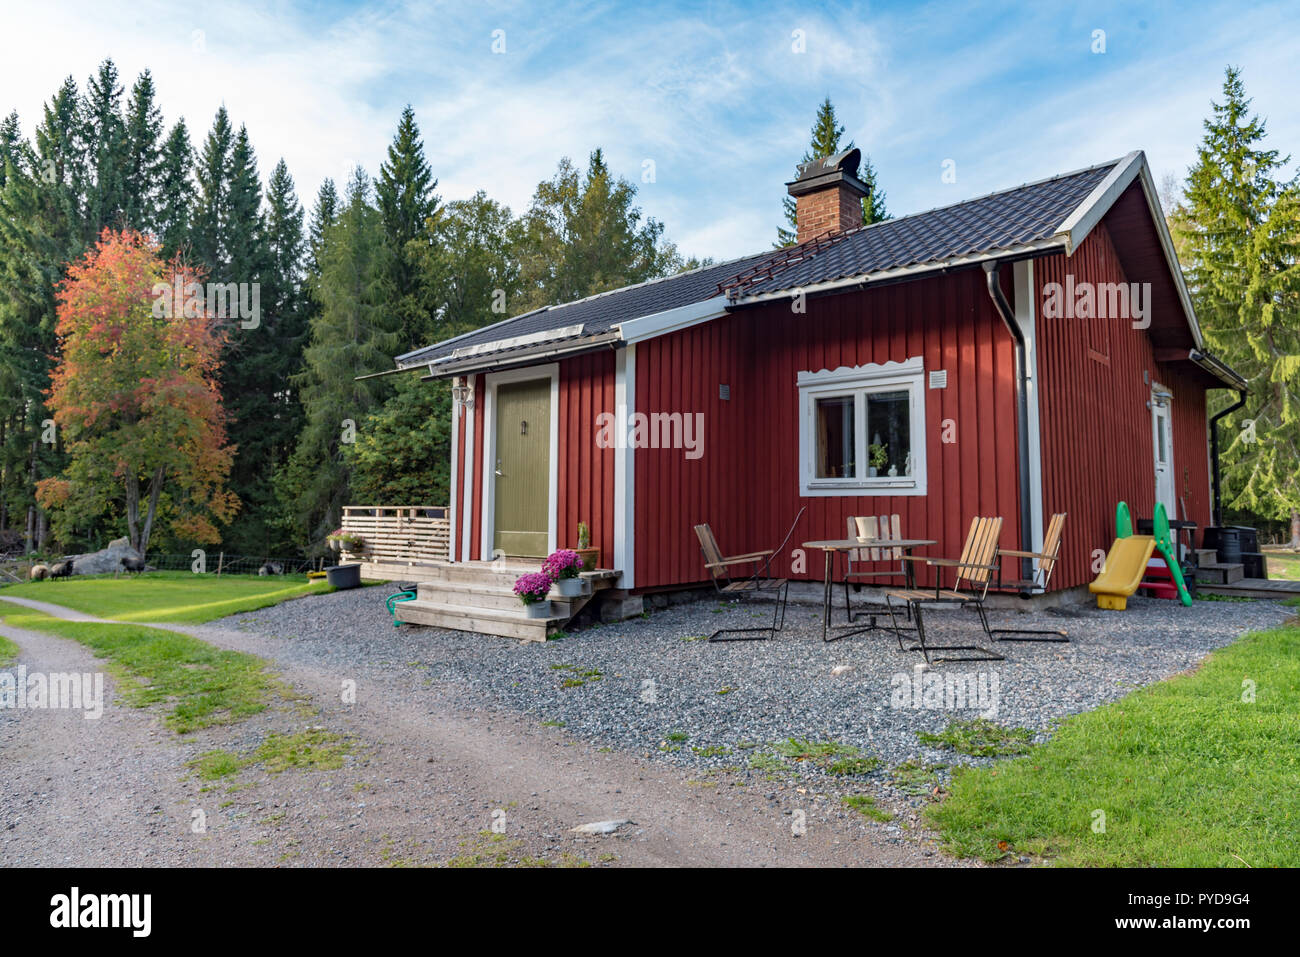 little red cabin with a green door in swedish forest autumn 2018 - Stock Image